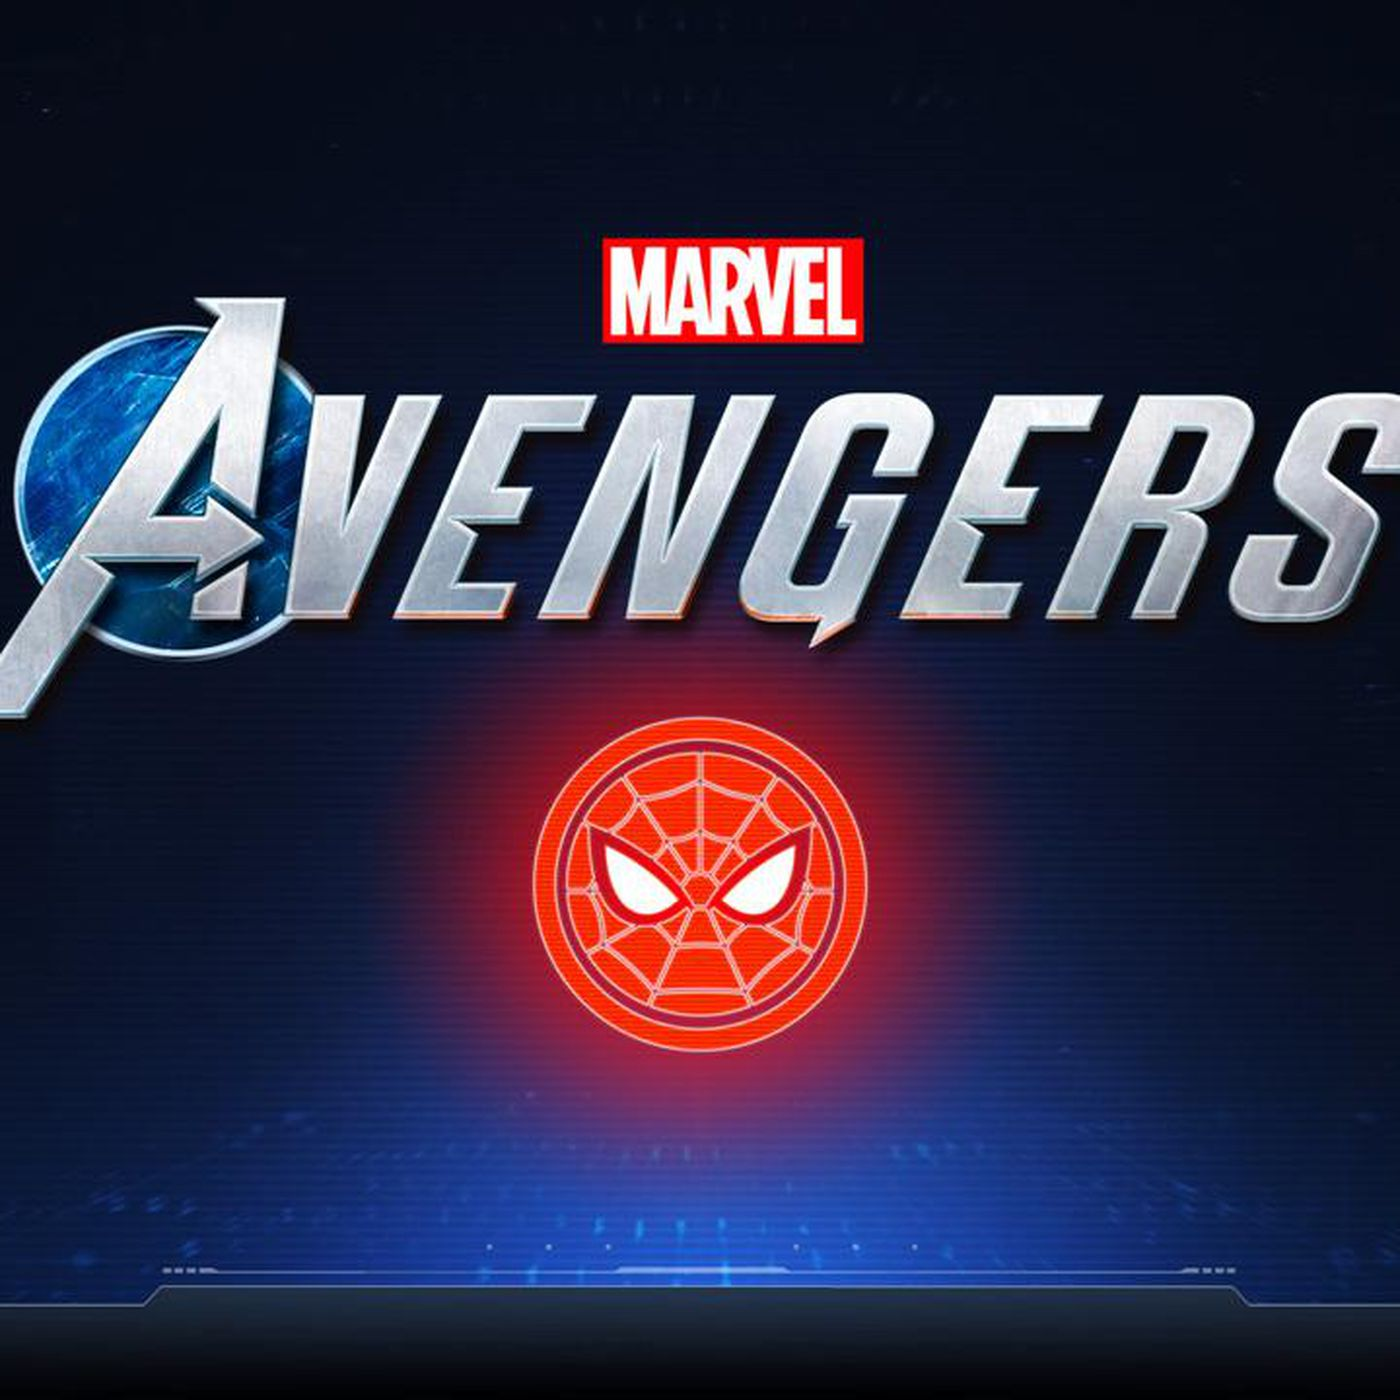 Square Enix's Avengers game is getting a PlayStation-exclusive ...